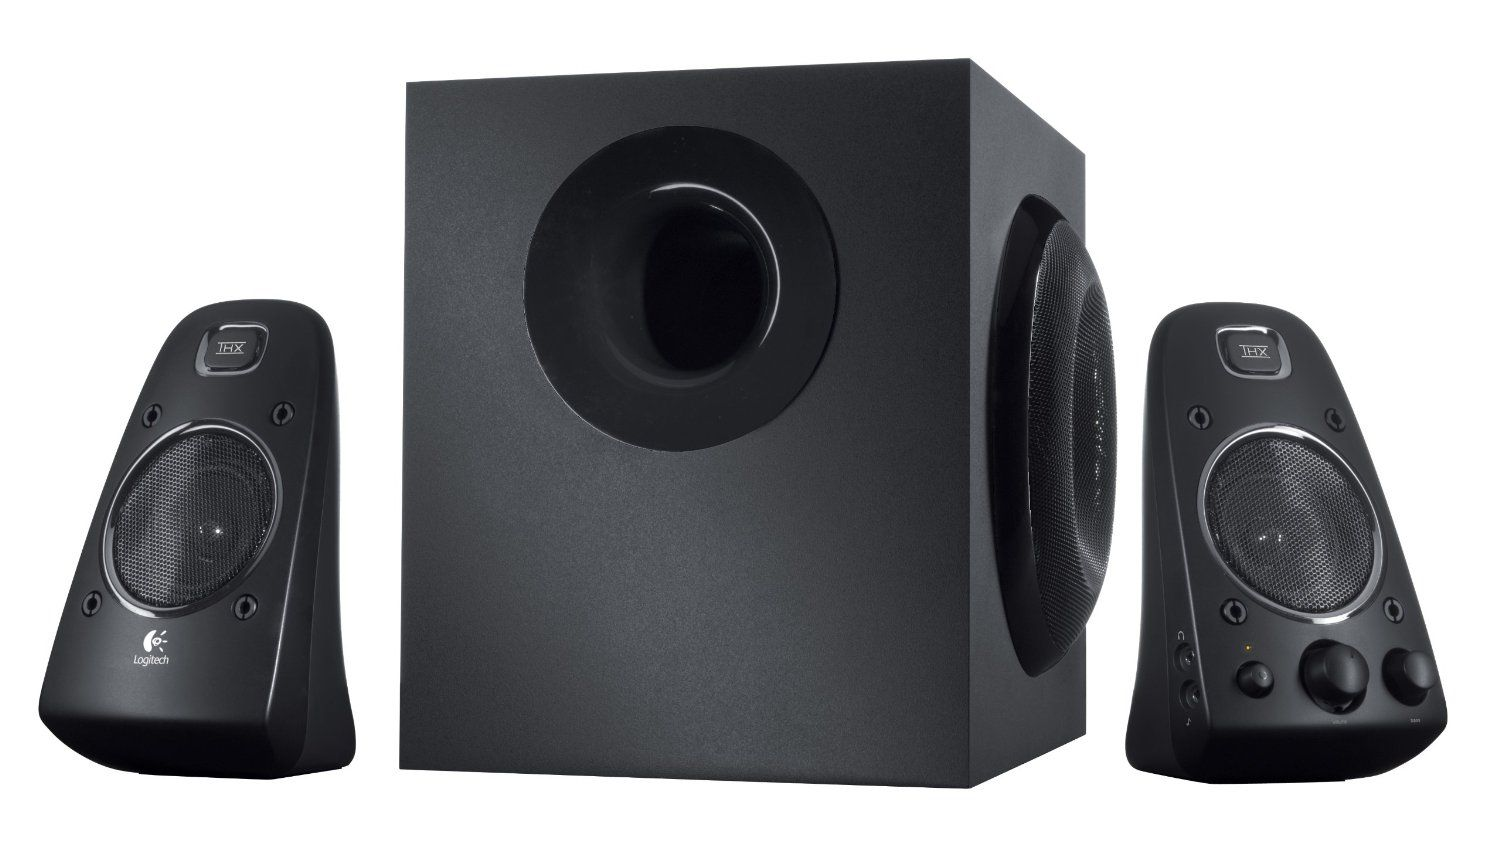 The 10 Best Computer Speakers To Buy In 2018 Subwoofers Will Consistent Power Both Maximizing Your Value Logitech Z623